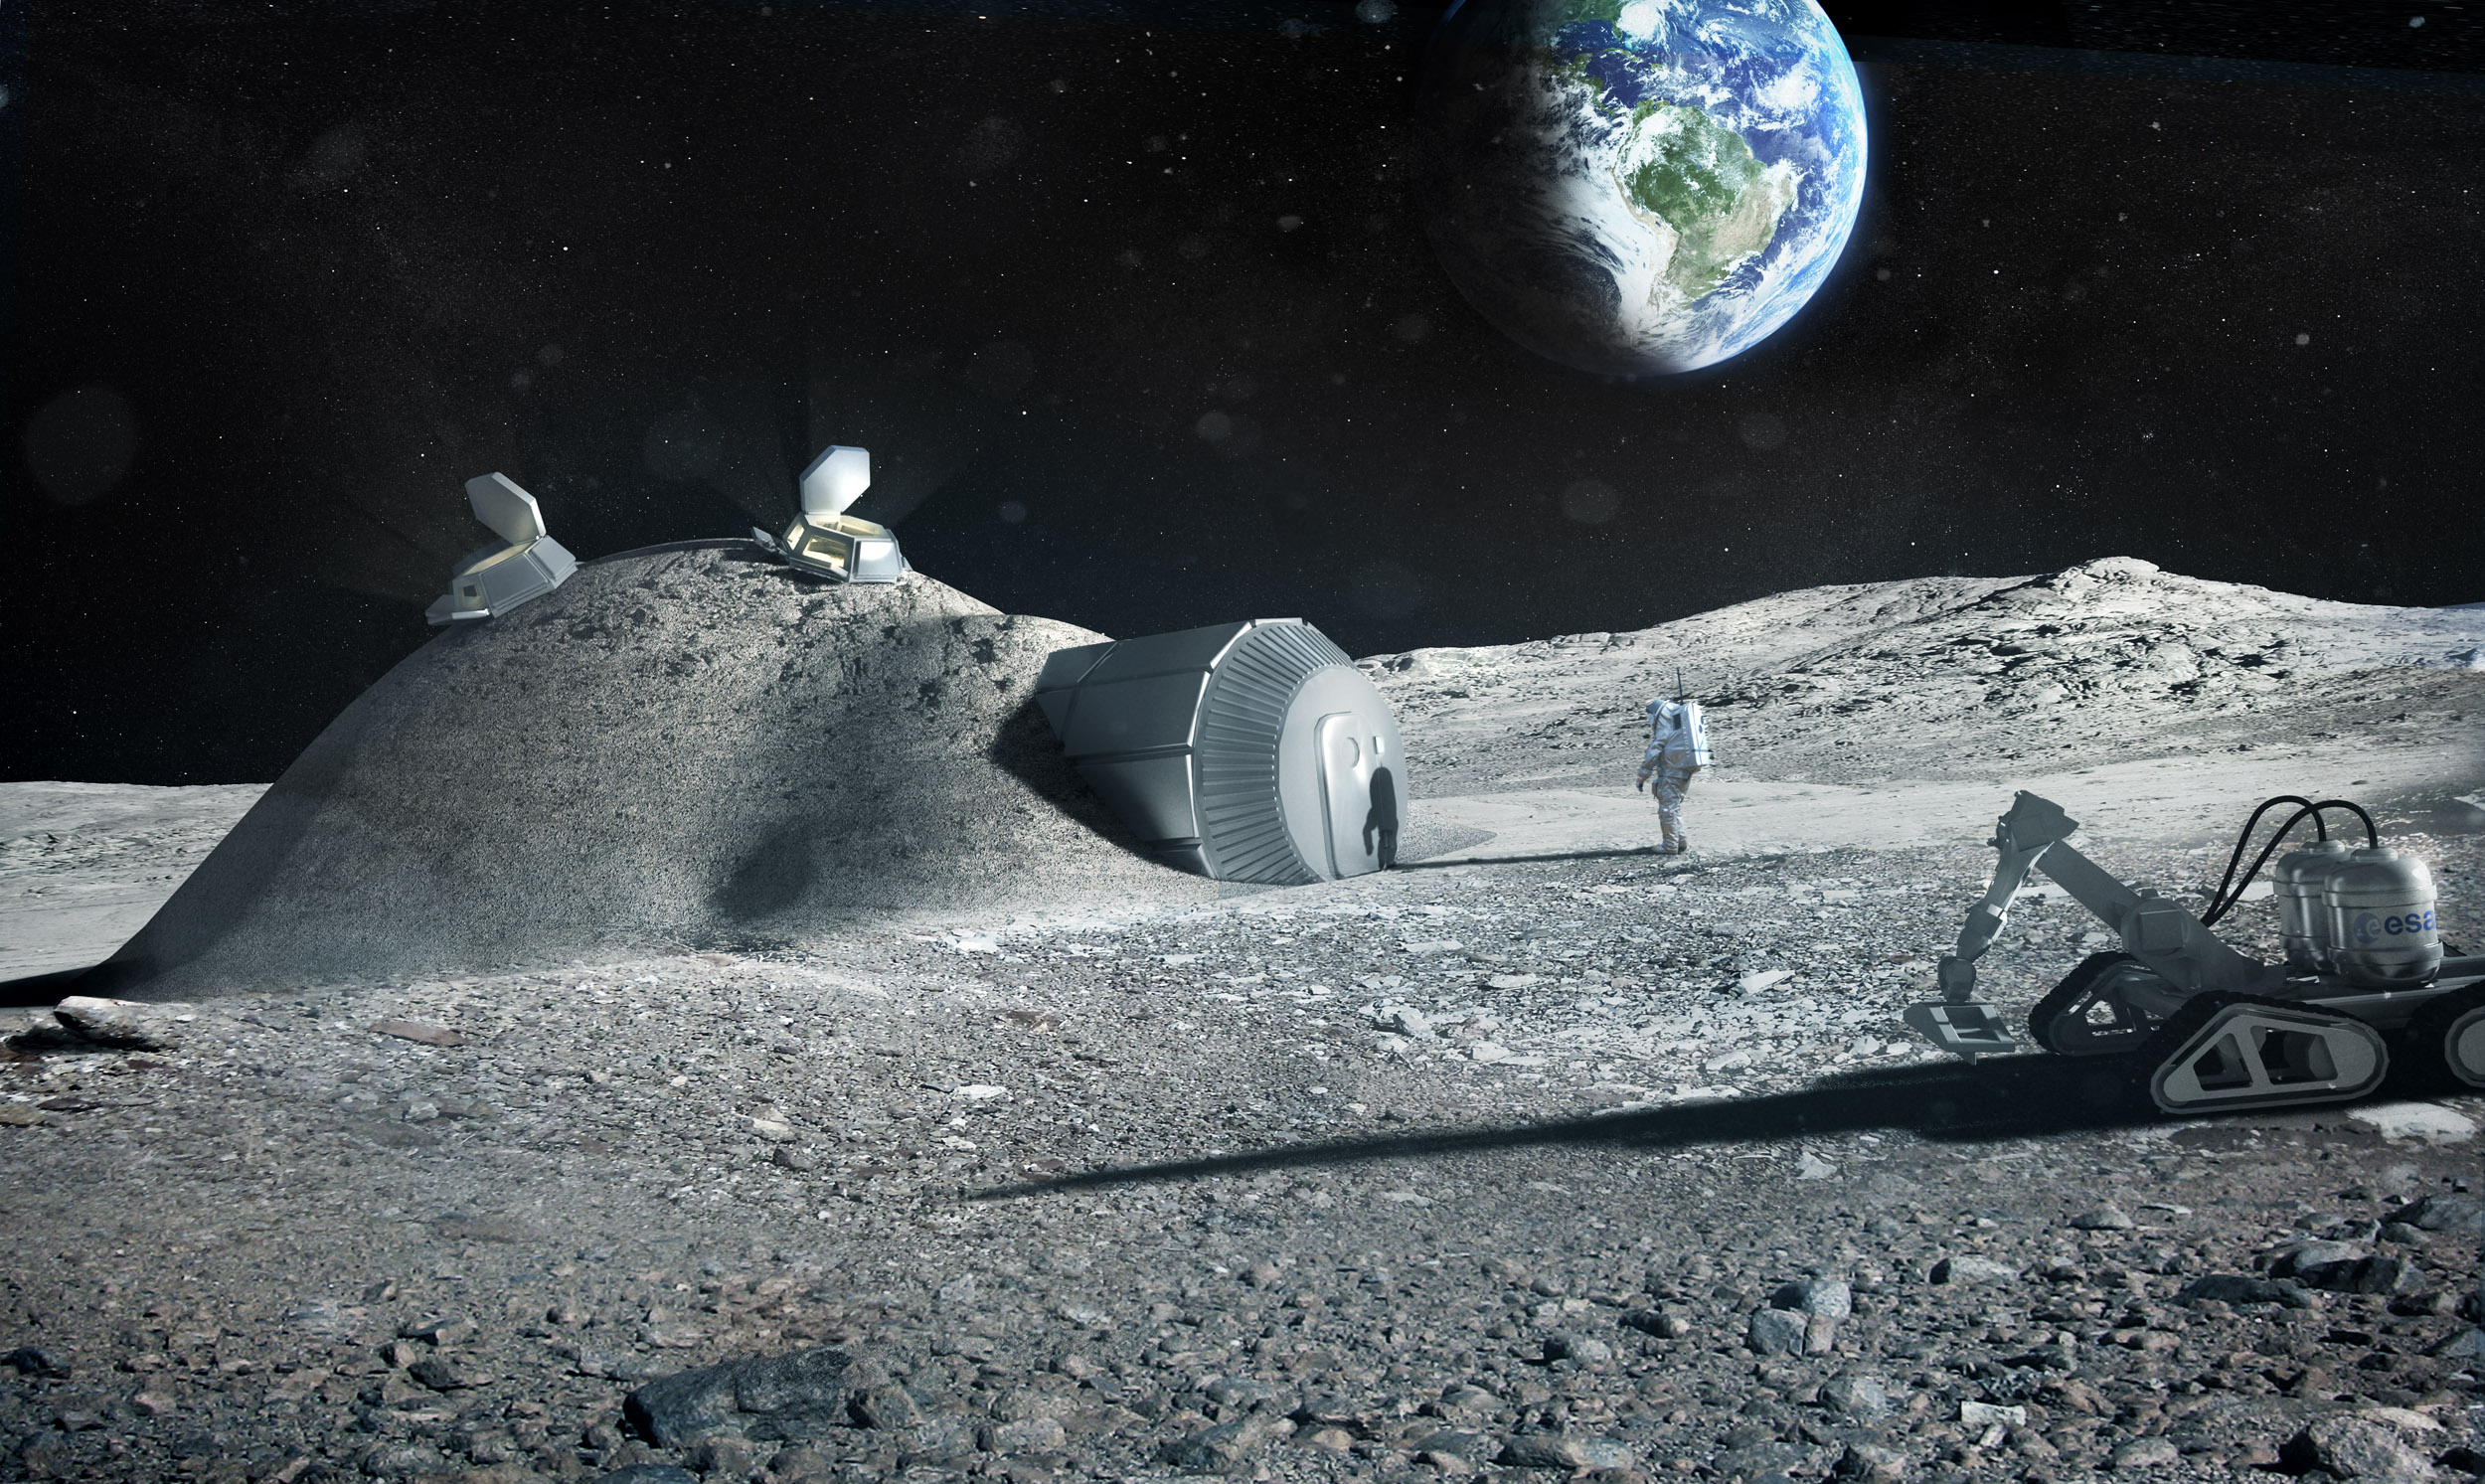 Image: Scientists find surface-exposed water ice on the moon